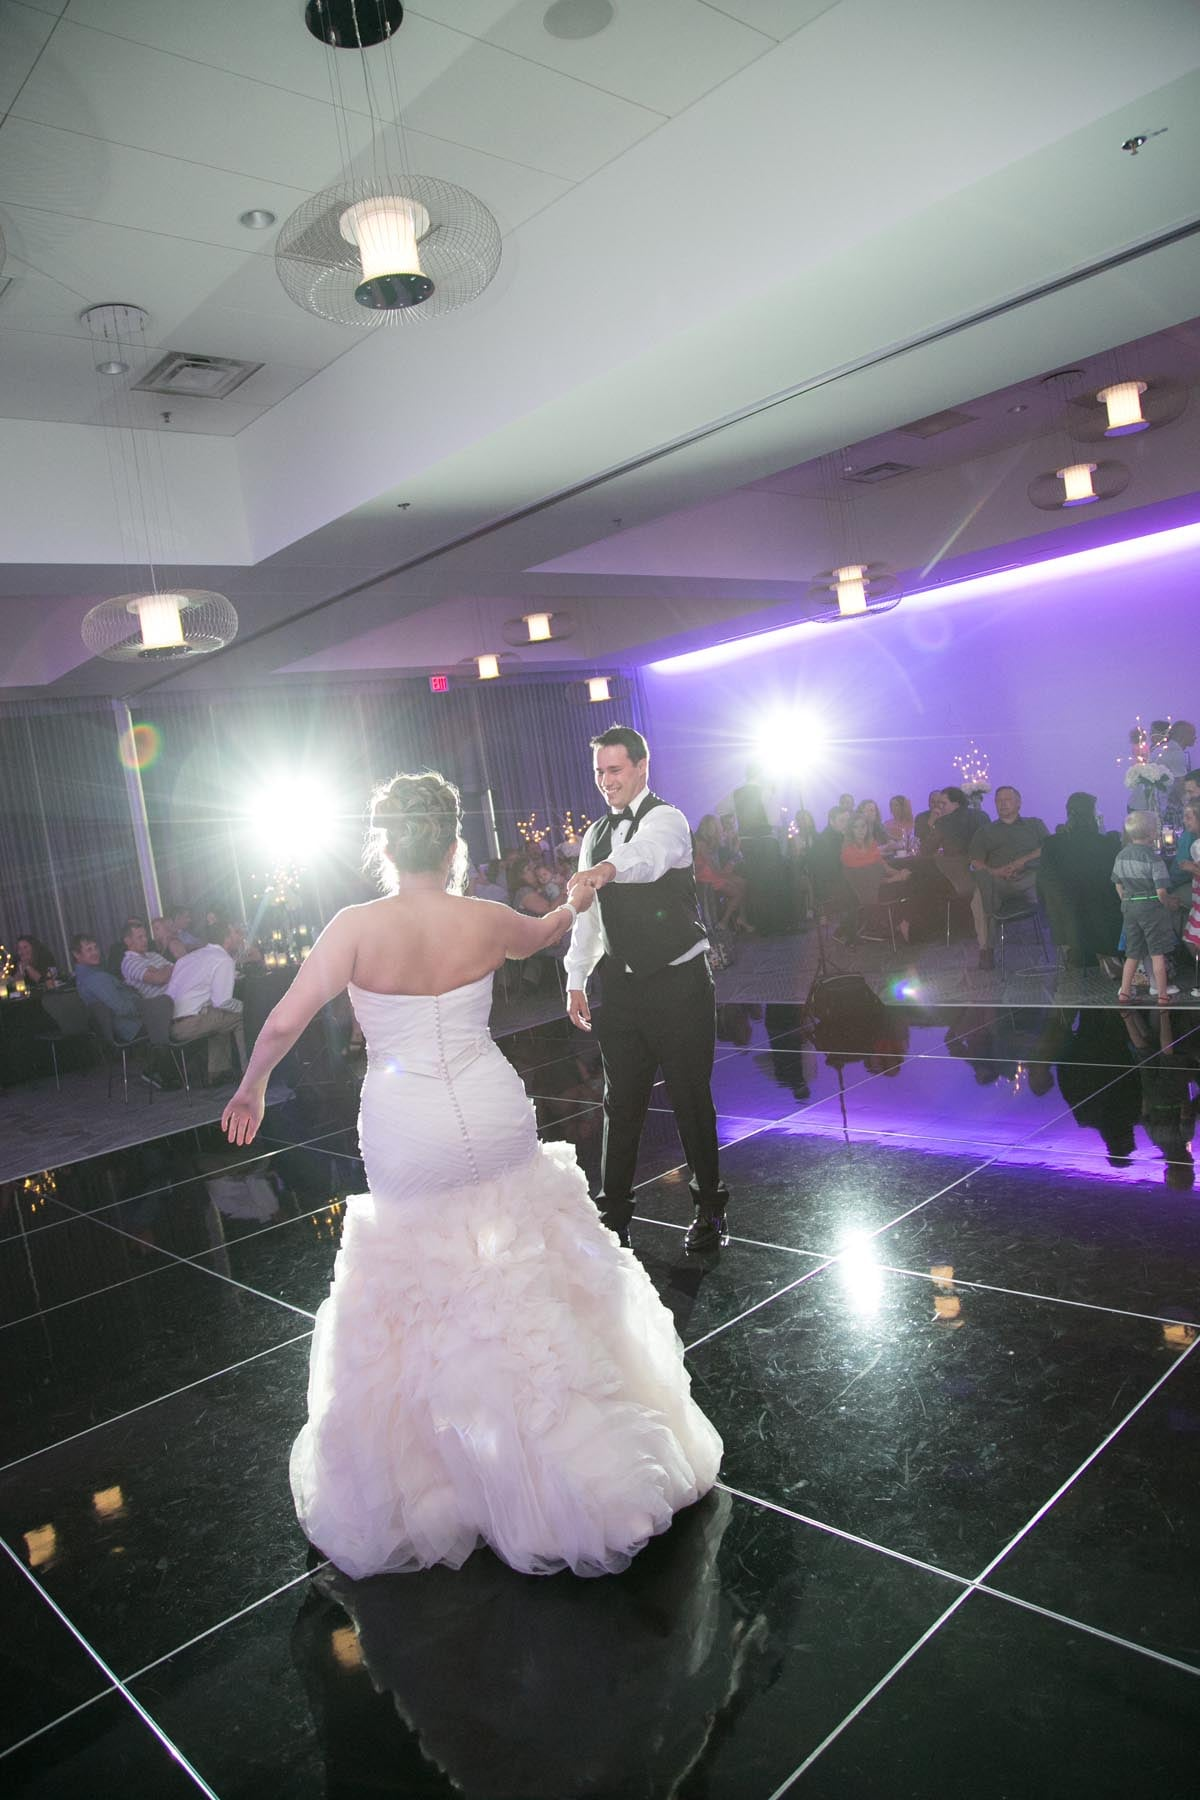 wedding-djs-mikeh-jodidan-0664.jpg